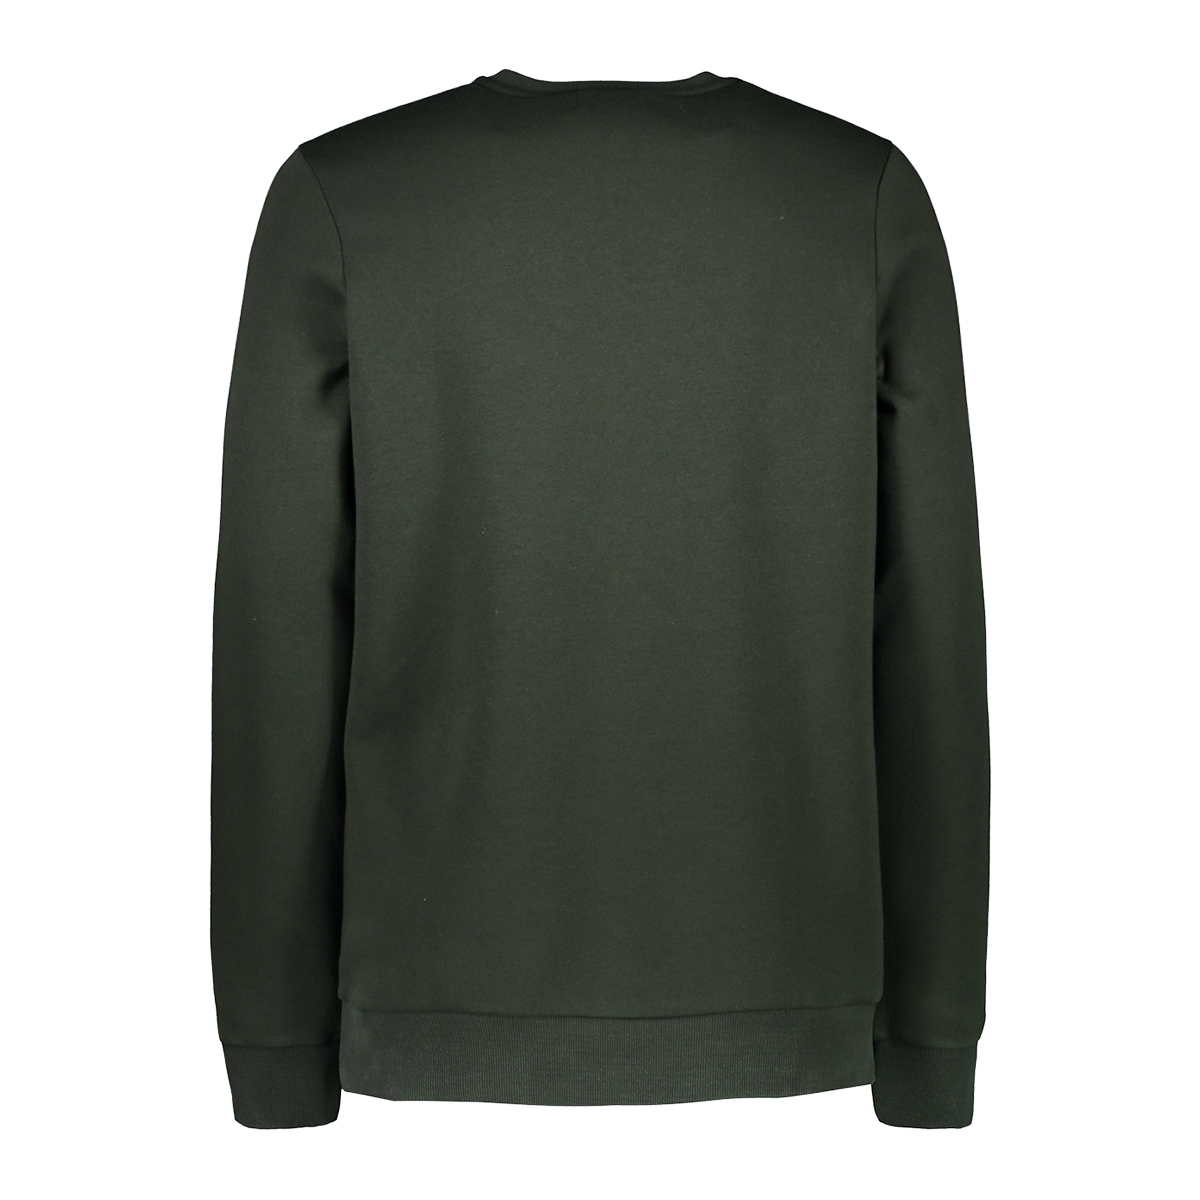 olivier sw 4391019 cars sweater army